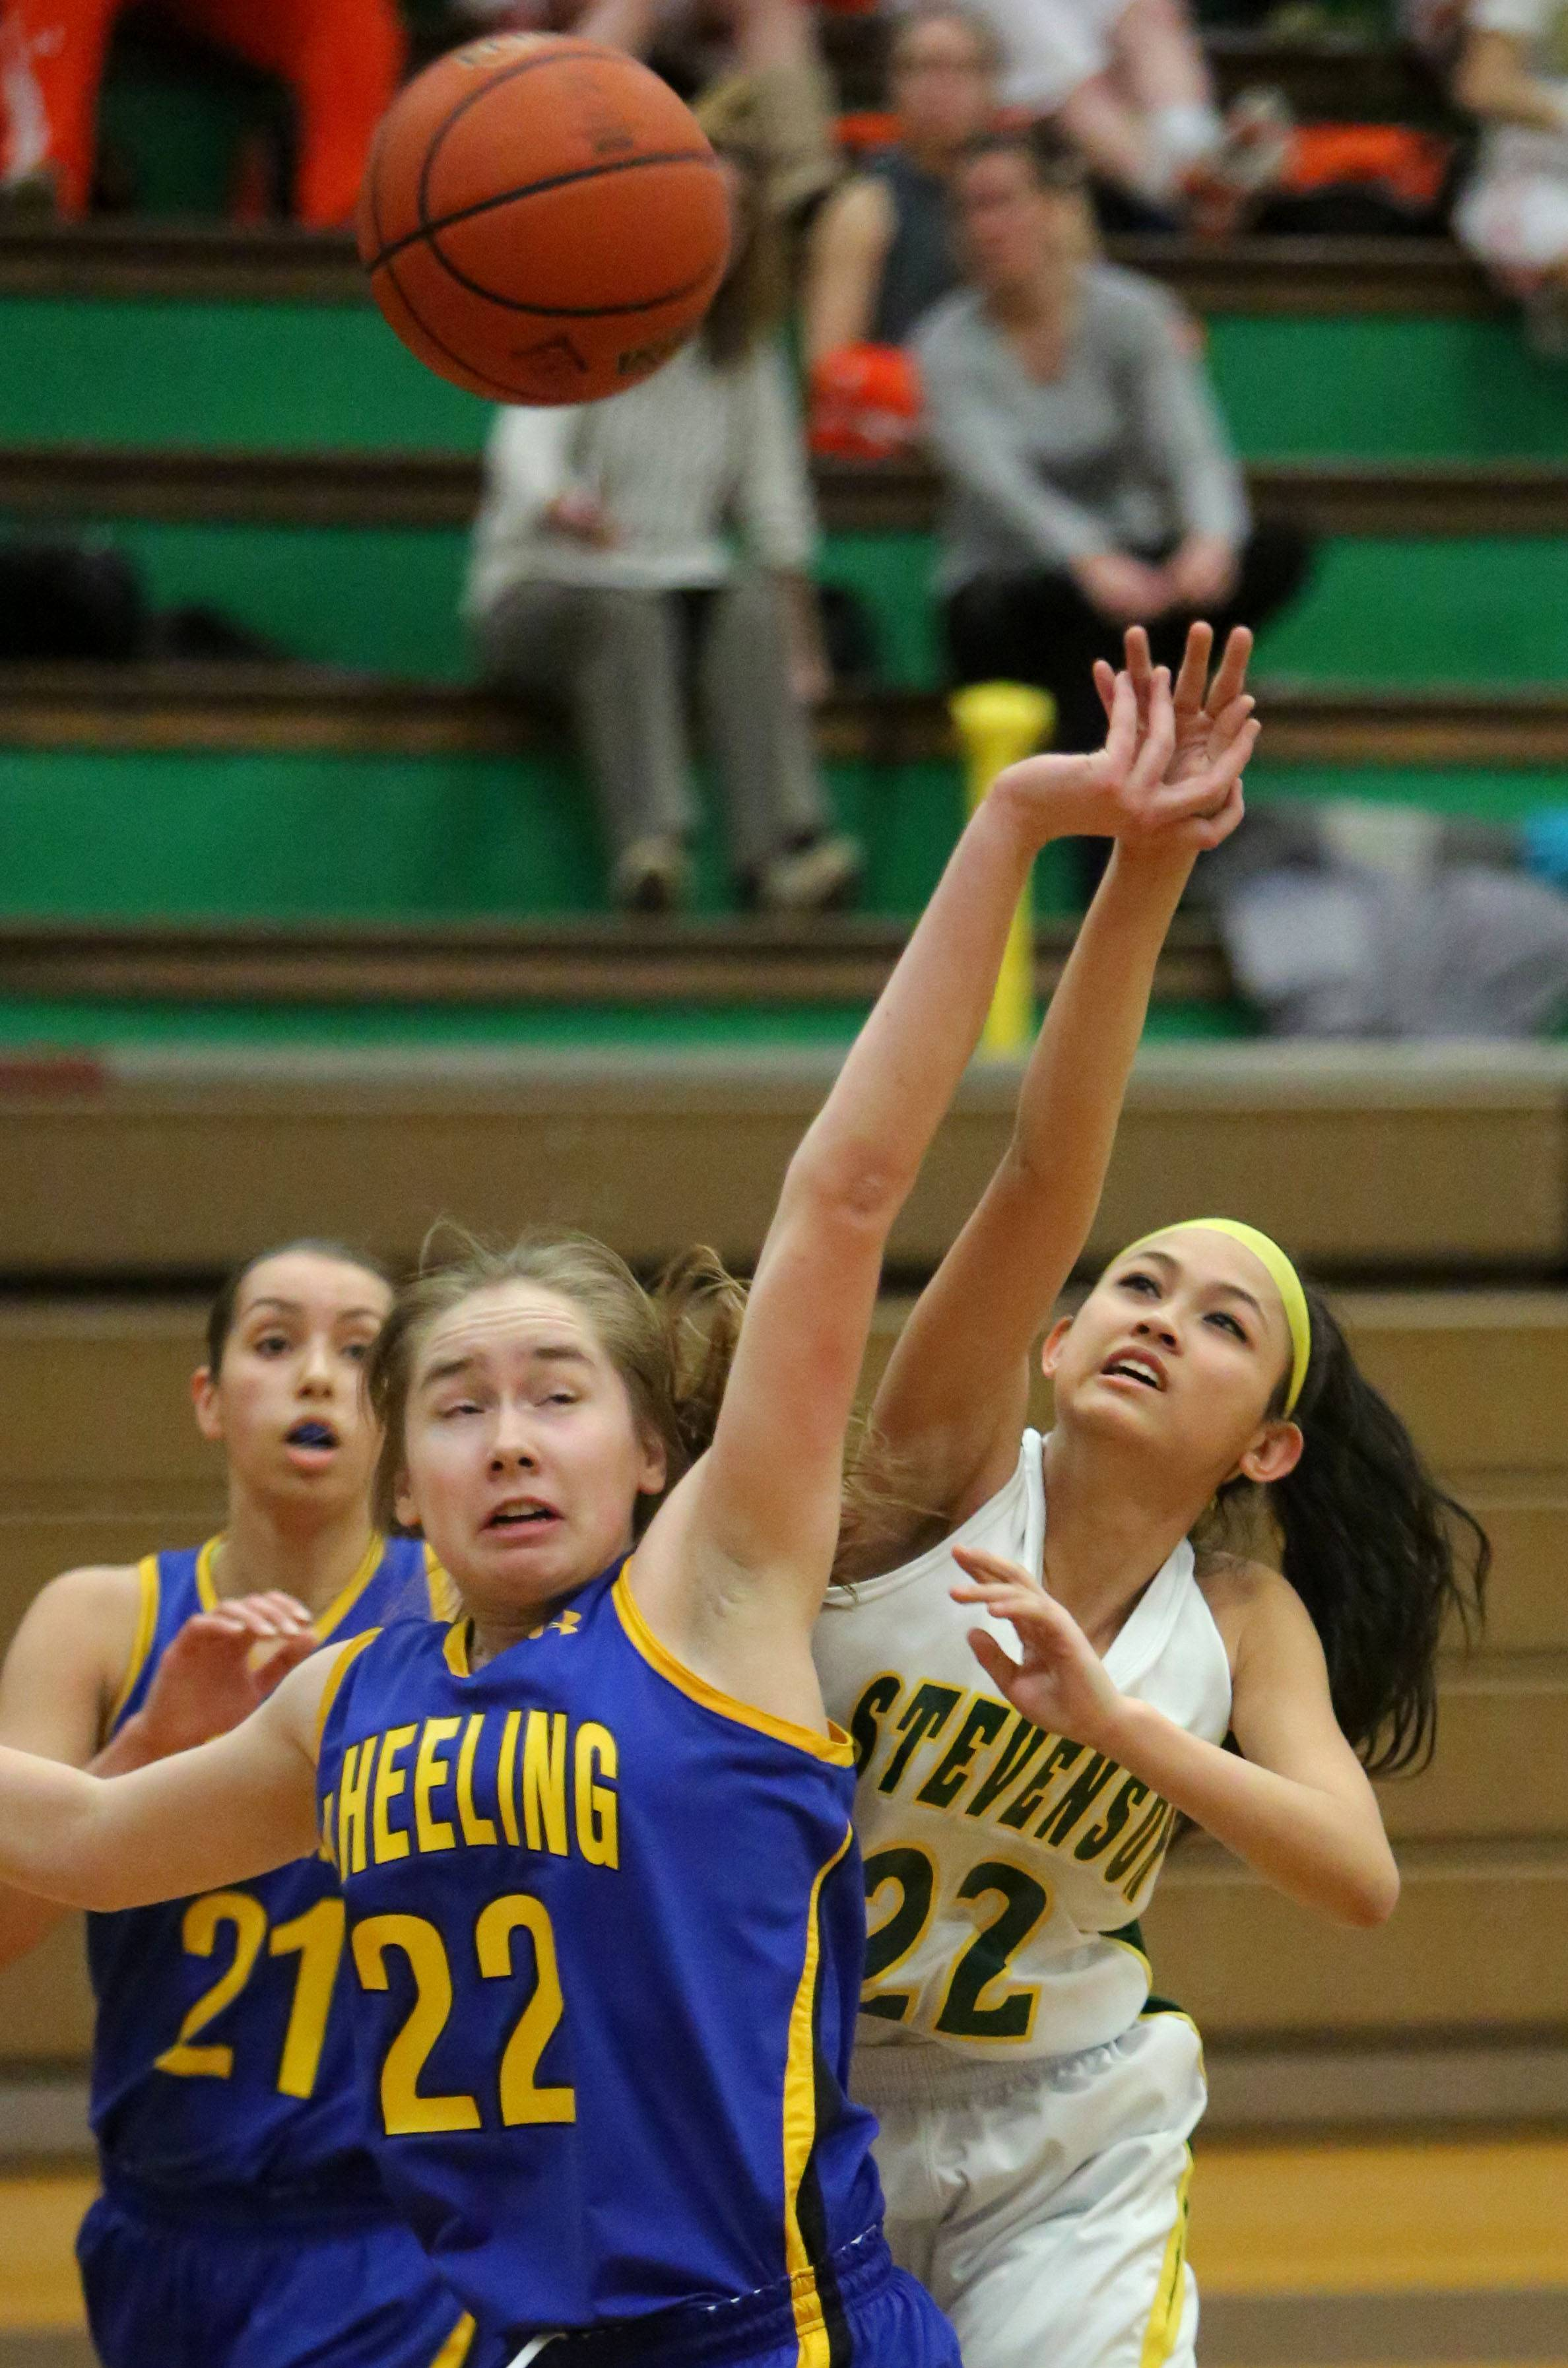 Wheeling's Hailey Dammeier, left, and Stevenson's Janine Fajardo stretch for a rebound .